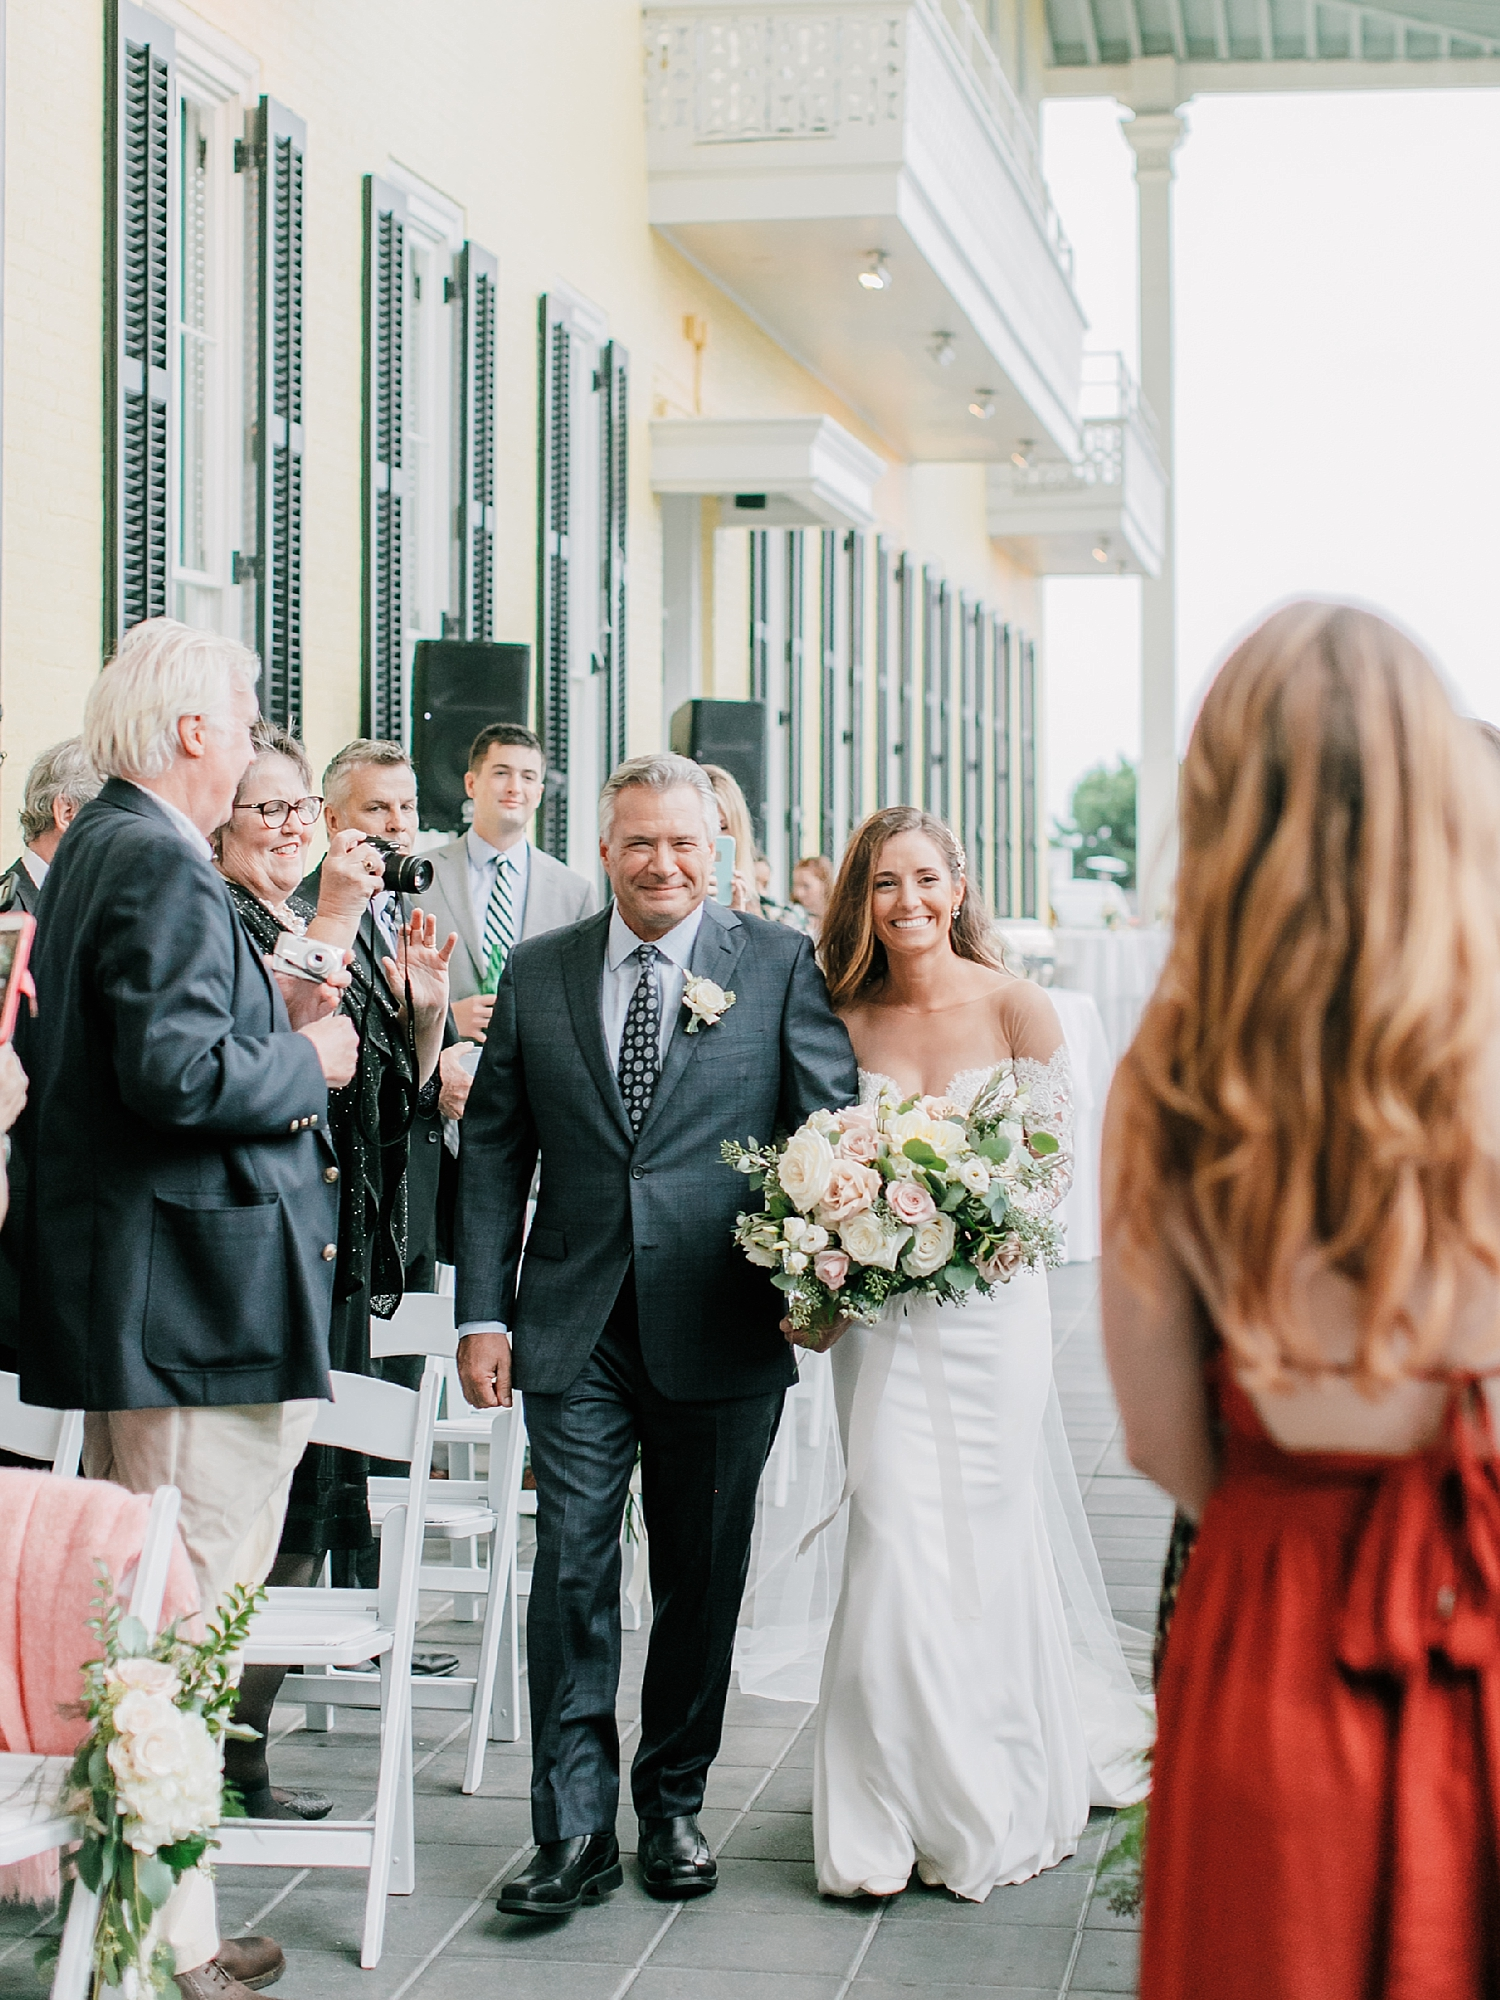 Intimate and Joyful Wedding Photography in Cape May NJ by Magdalena Studios 0032 4